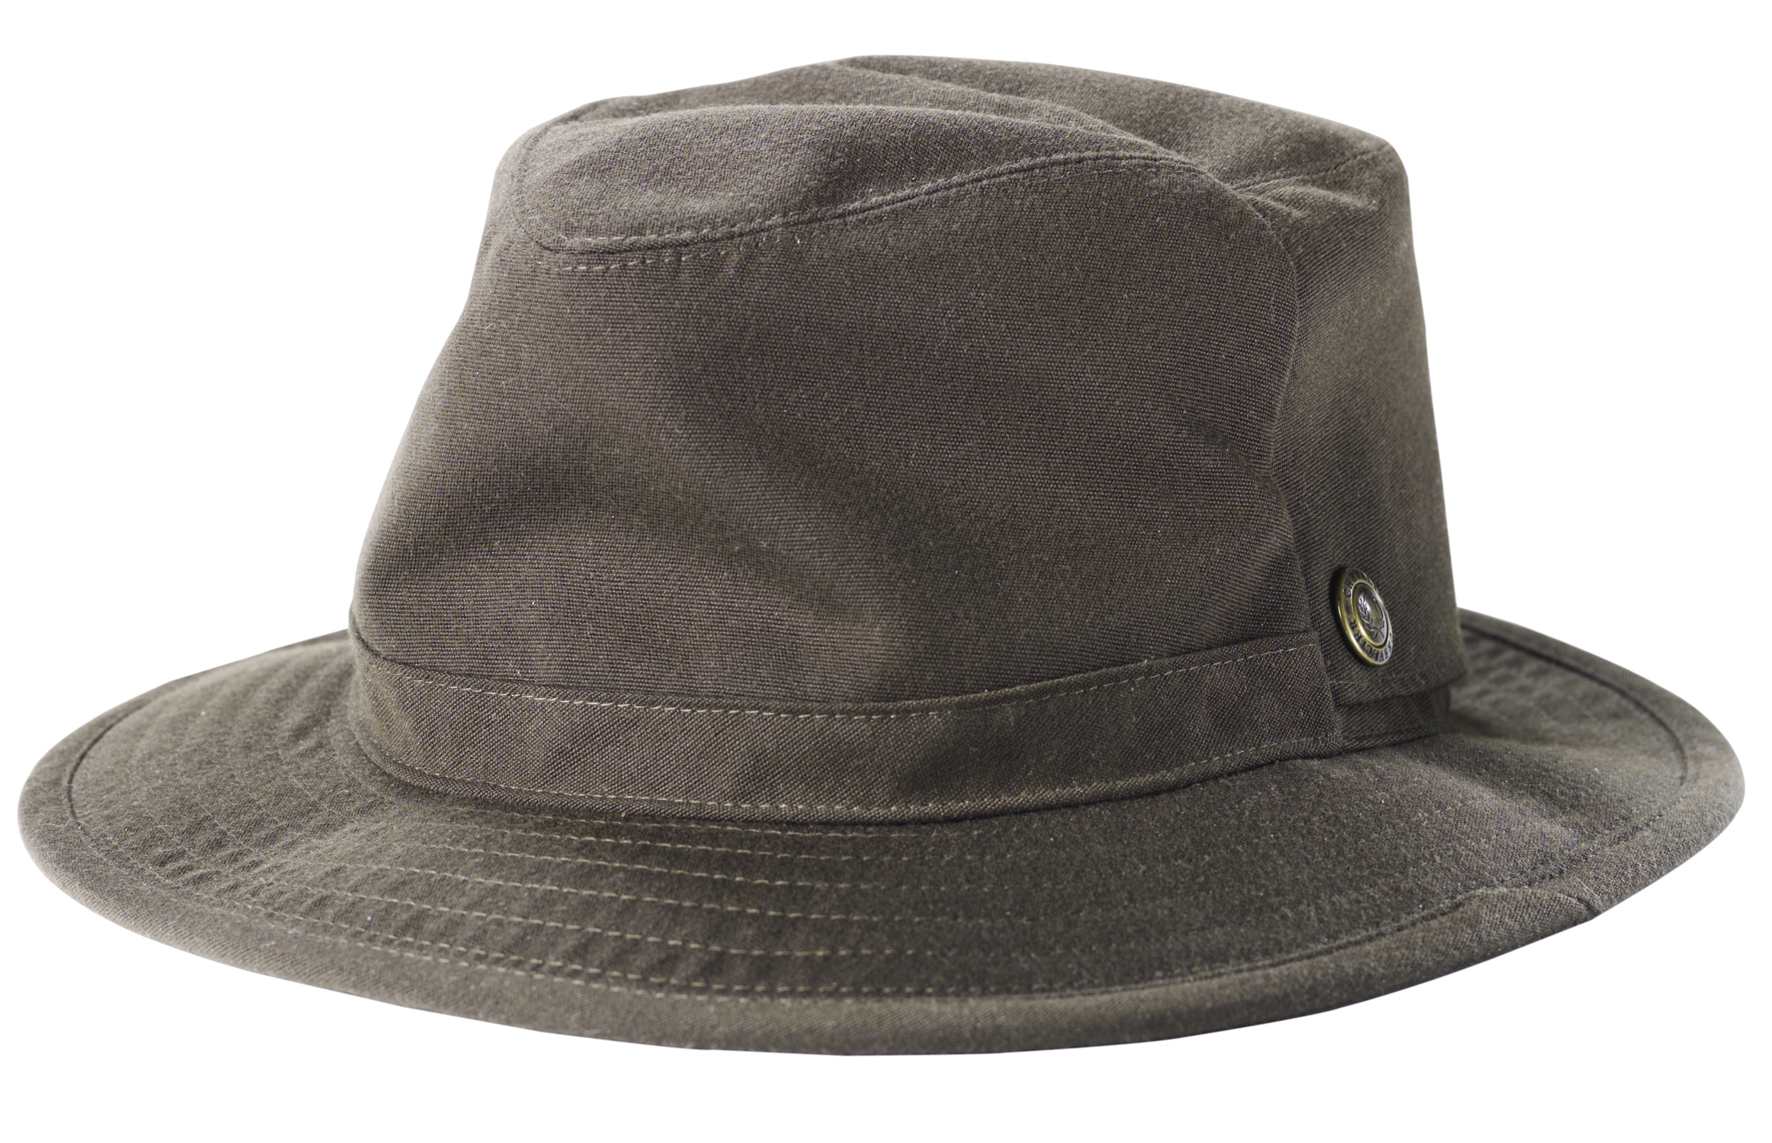 Hatt Chevalier Rough GTX Hat